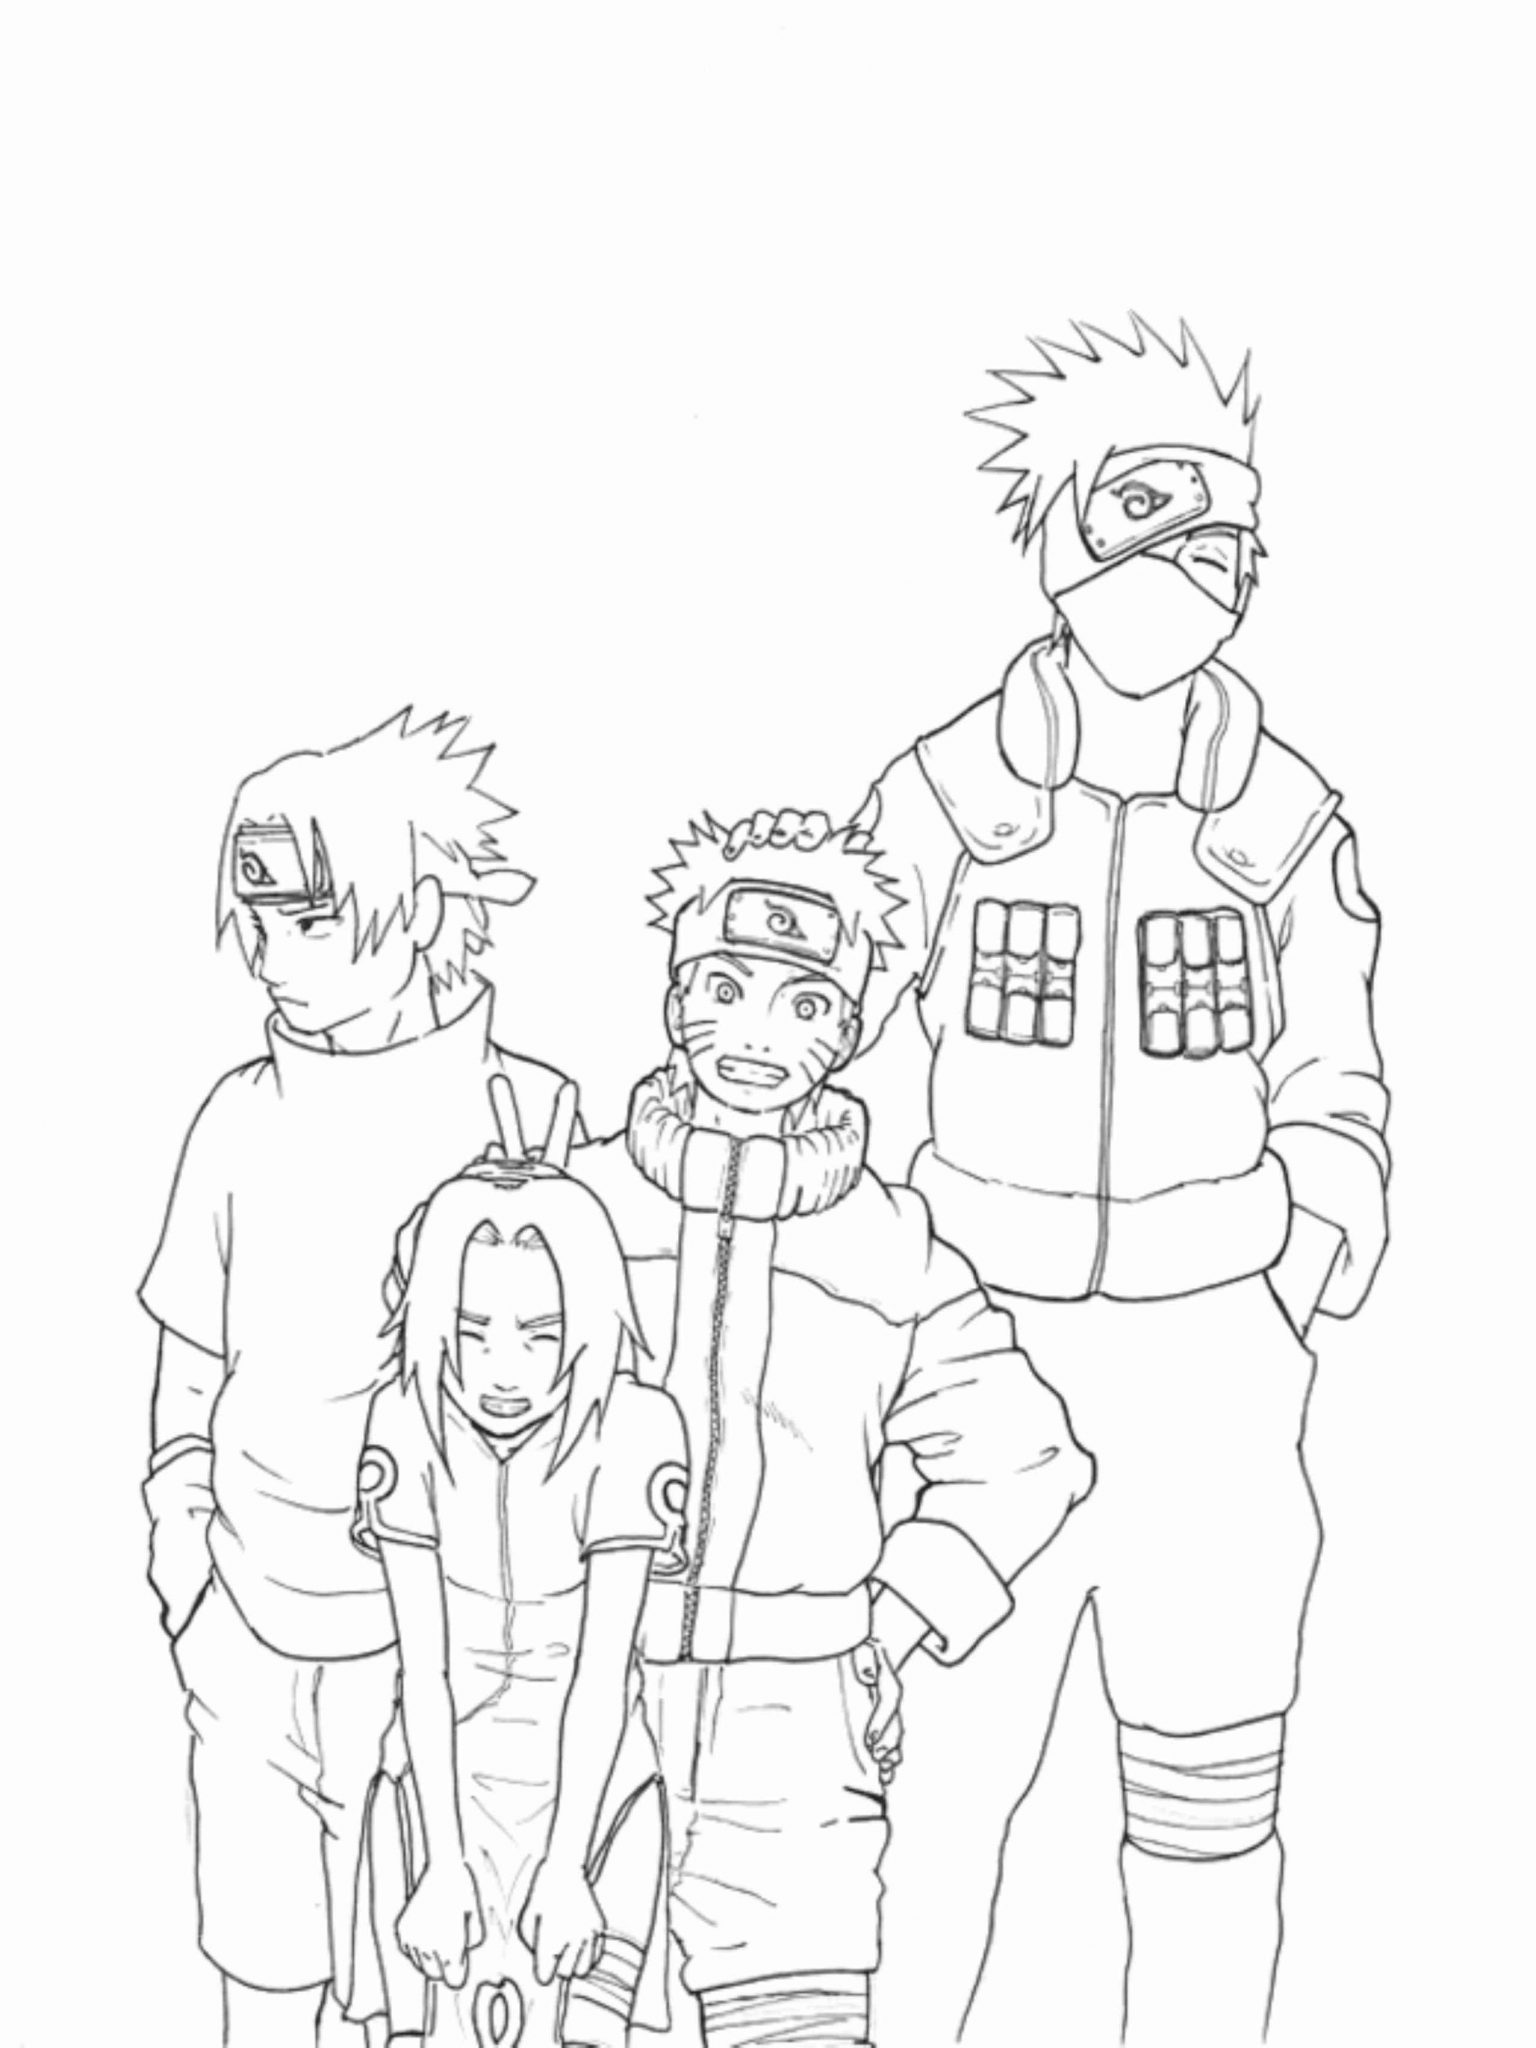 coloring pages naruto printable naruto coloring pages to get your kids occupied pages coloring naruto